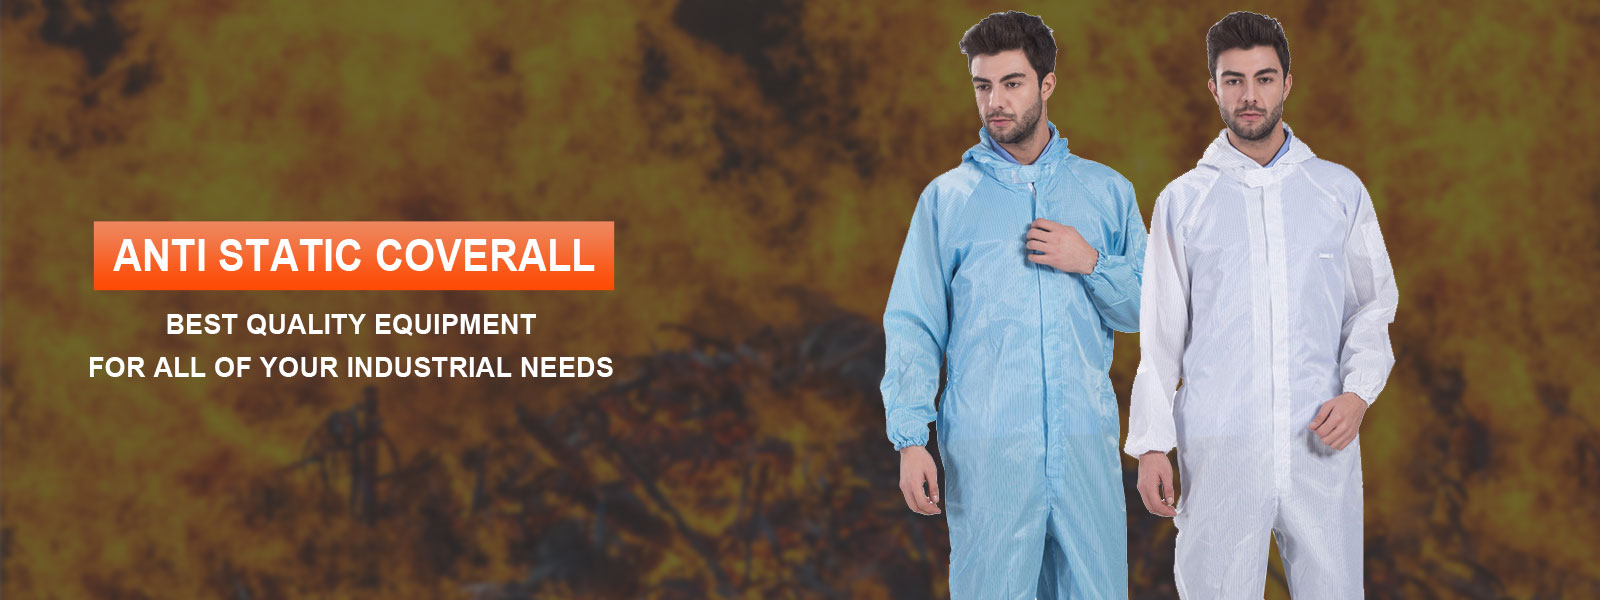 Anti Static Coverall Manufacturers in Saint kitts and nevis